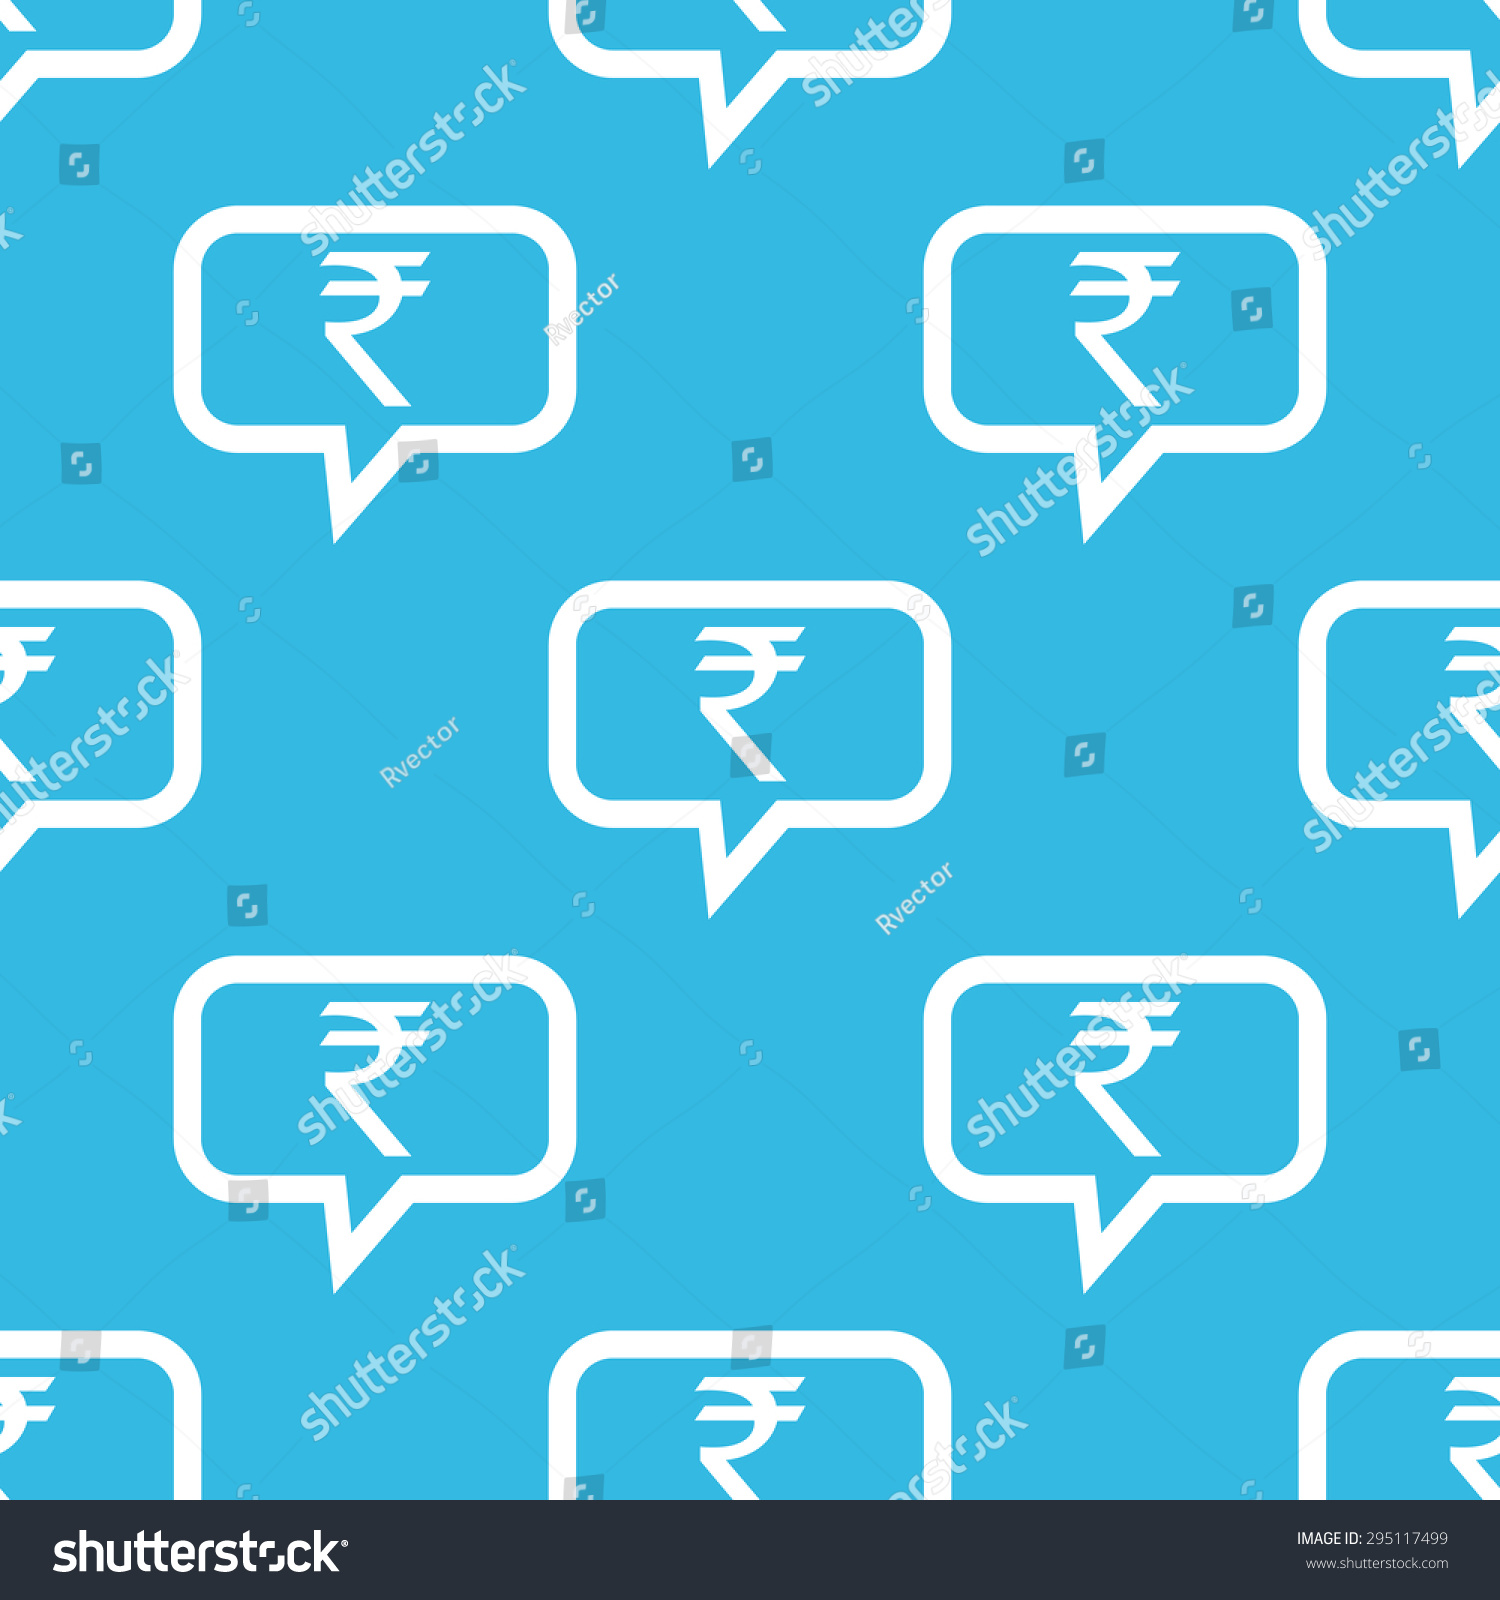 Indian rupee symbol chat bubble repeated stock illustration indian rupee symbol chat bubble repeated stock illustration 295117499 shutterstock biocorpaavc Choice Image